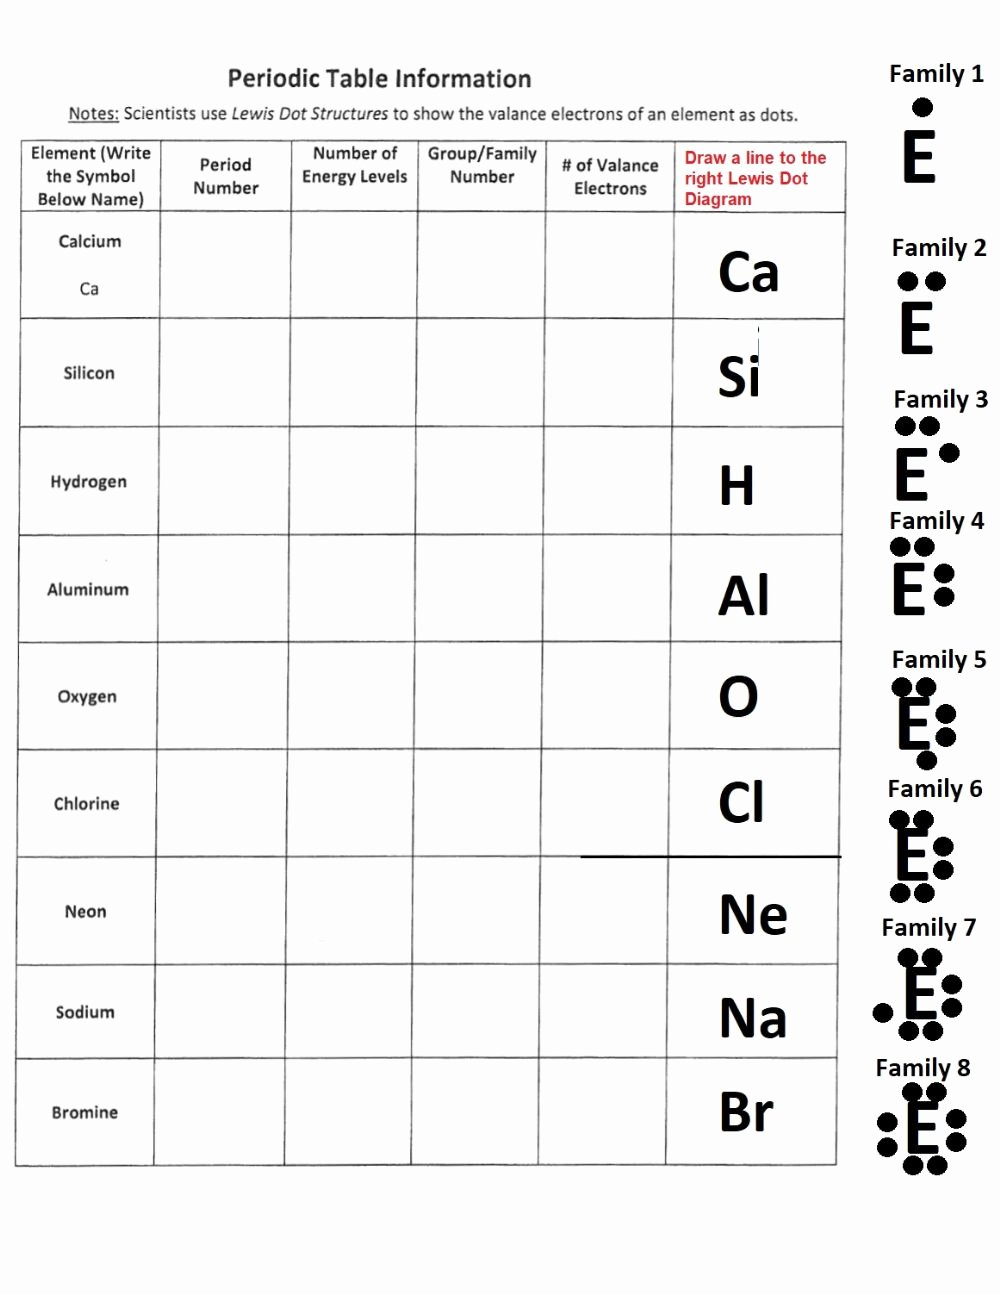 Lewis Dot Diagrams Worksheet Answers Inspirational Periodic Table Information & Dot Diagrams Interactive